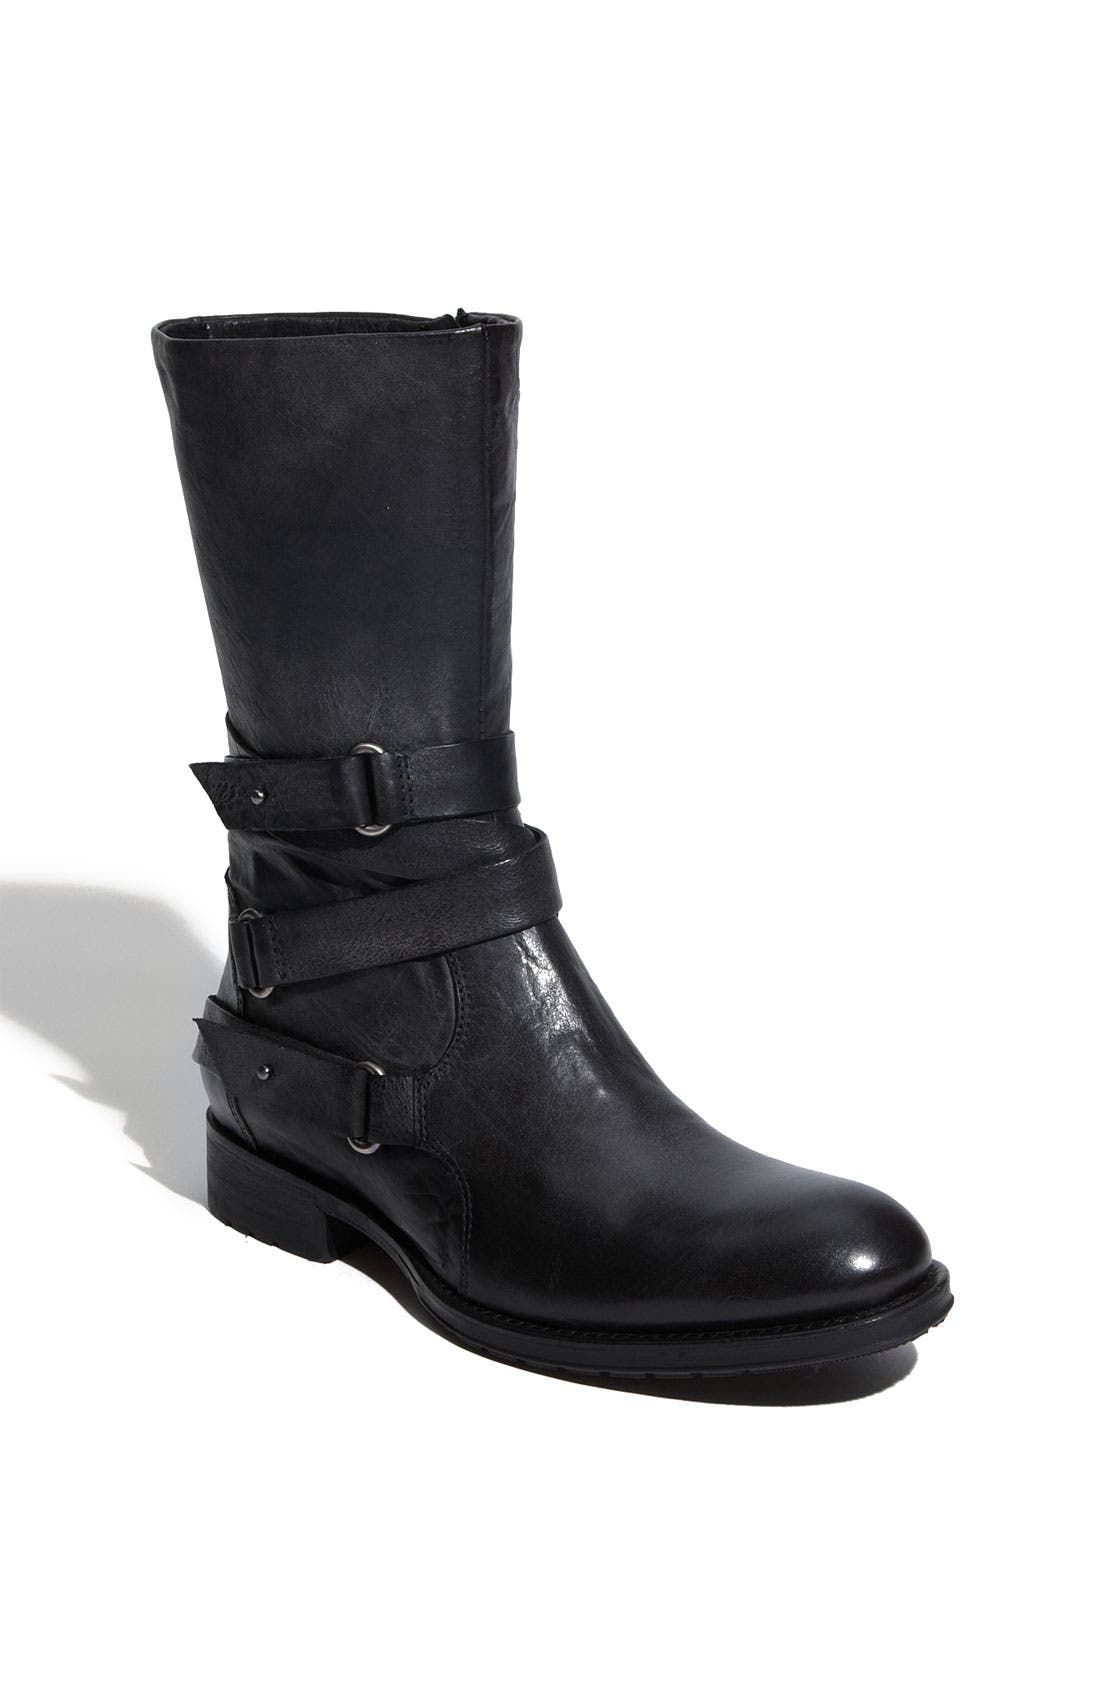 Alternate Image 1 Selected - Vera Wang Lavender 'Kipp' Strappy Leather Boot